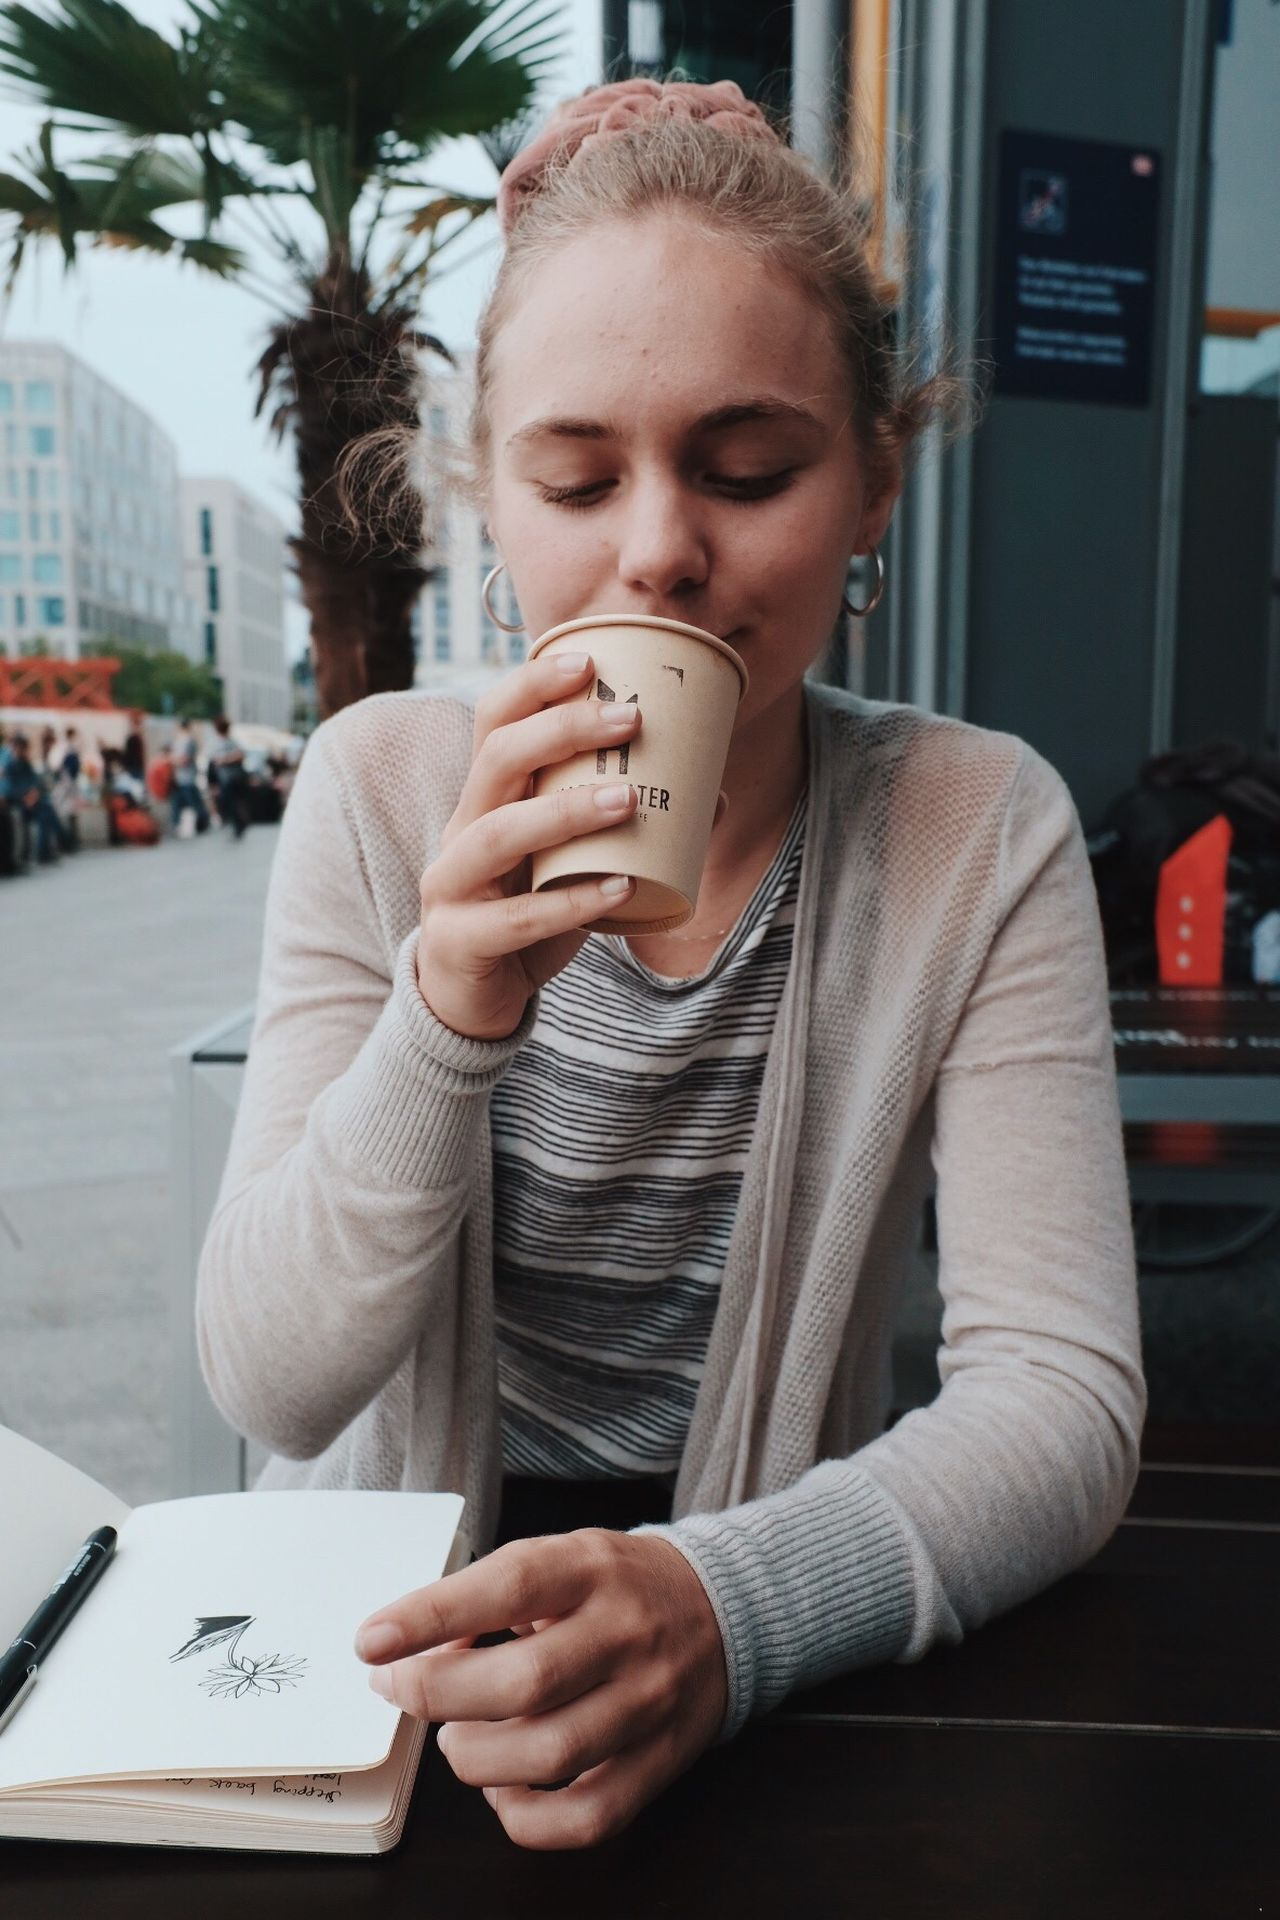 Front View Real People One Person Coffee - Drink Sitting Young Adult Drink Coffee Cup Table Young Women Food And Drink Drinking Day Holding Cafe Women Lifestyles Close-up